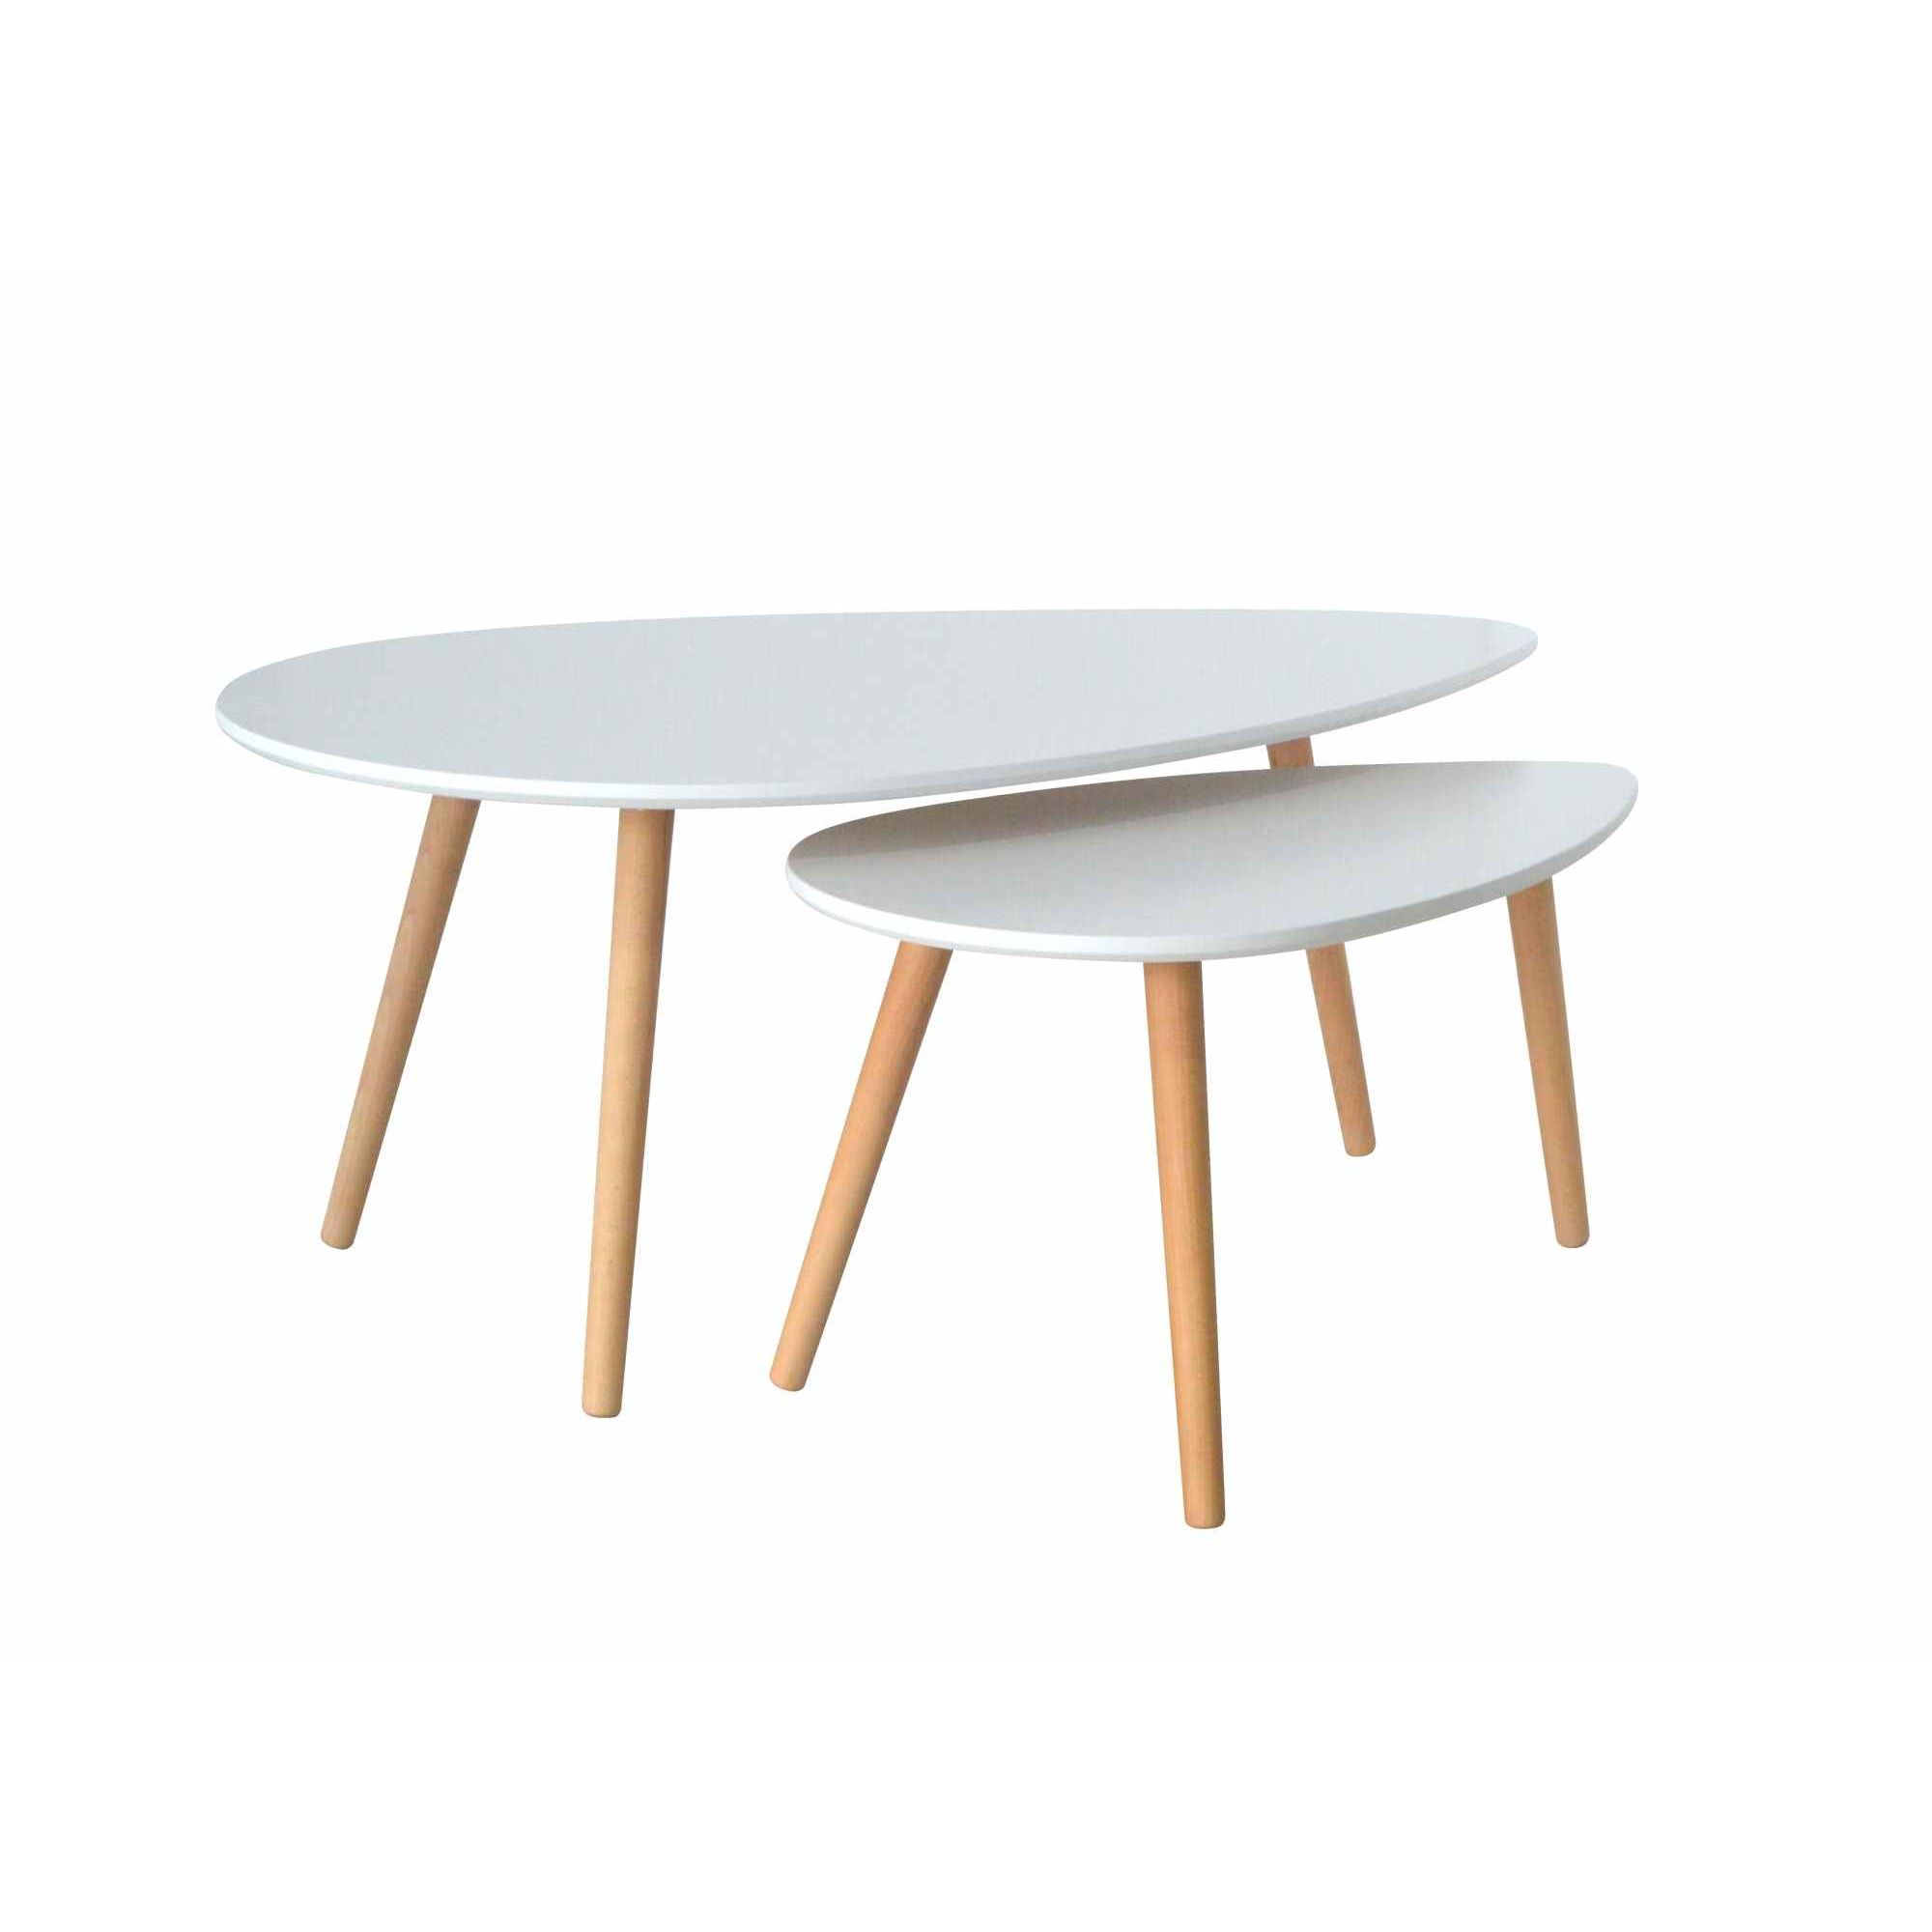 Table Basse Scandinave Verre Table Basse Scandinave Bois Clair Wraste